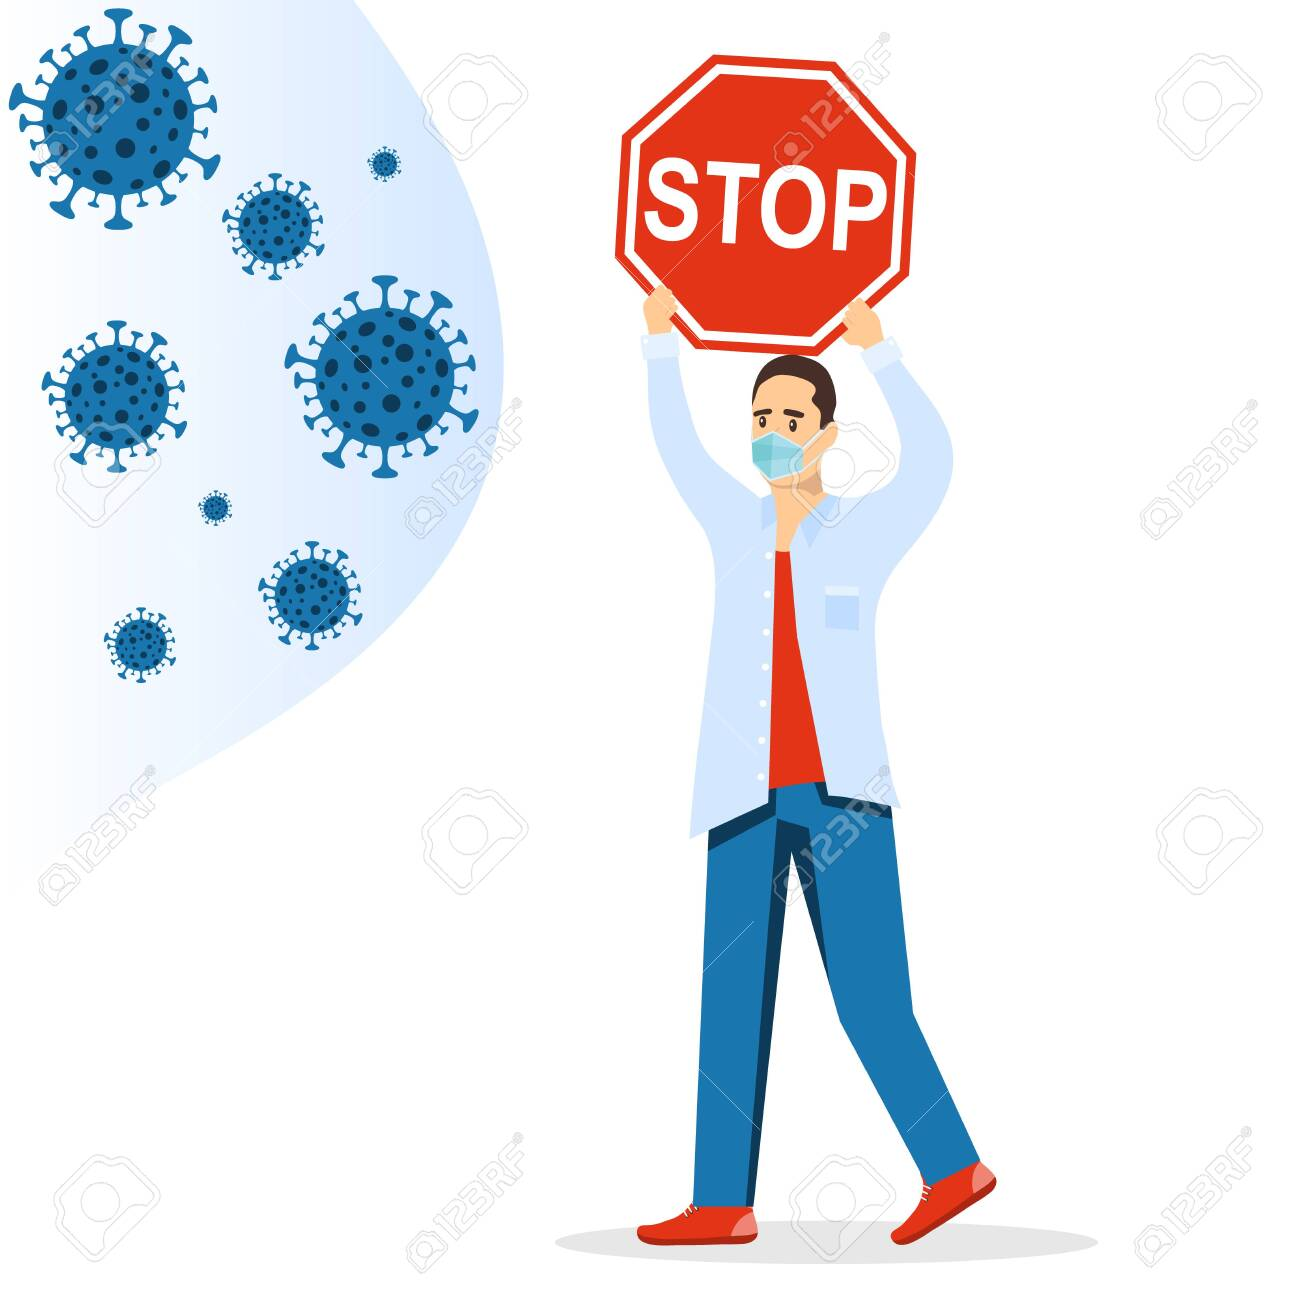 COVID-19. A masked man holds a banner stop coronavirus, protecting himself from viruses flying at him. Vector illustration. Vector. - 149896906